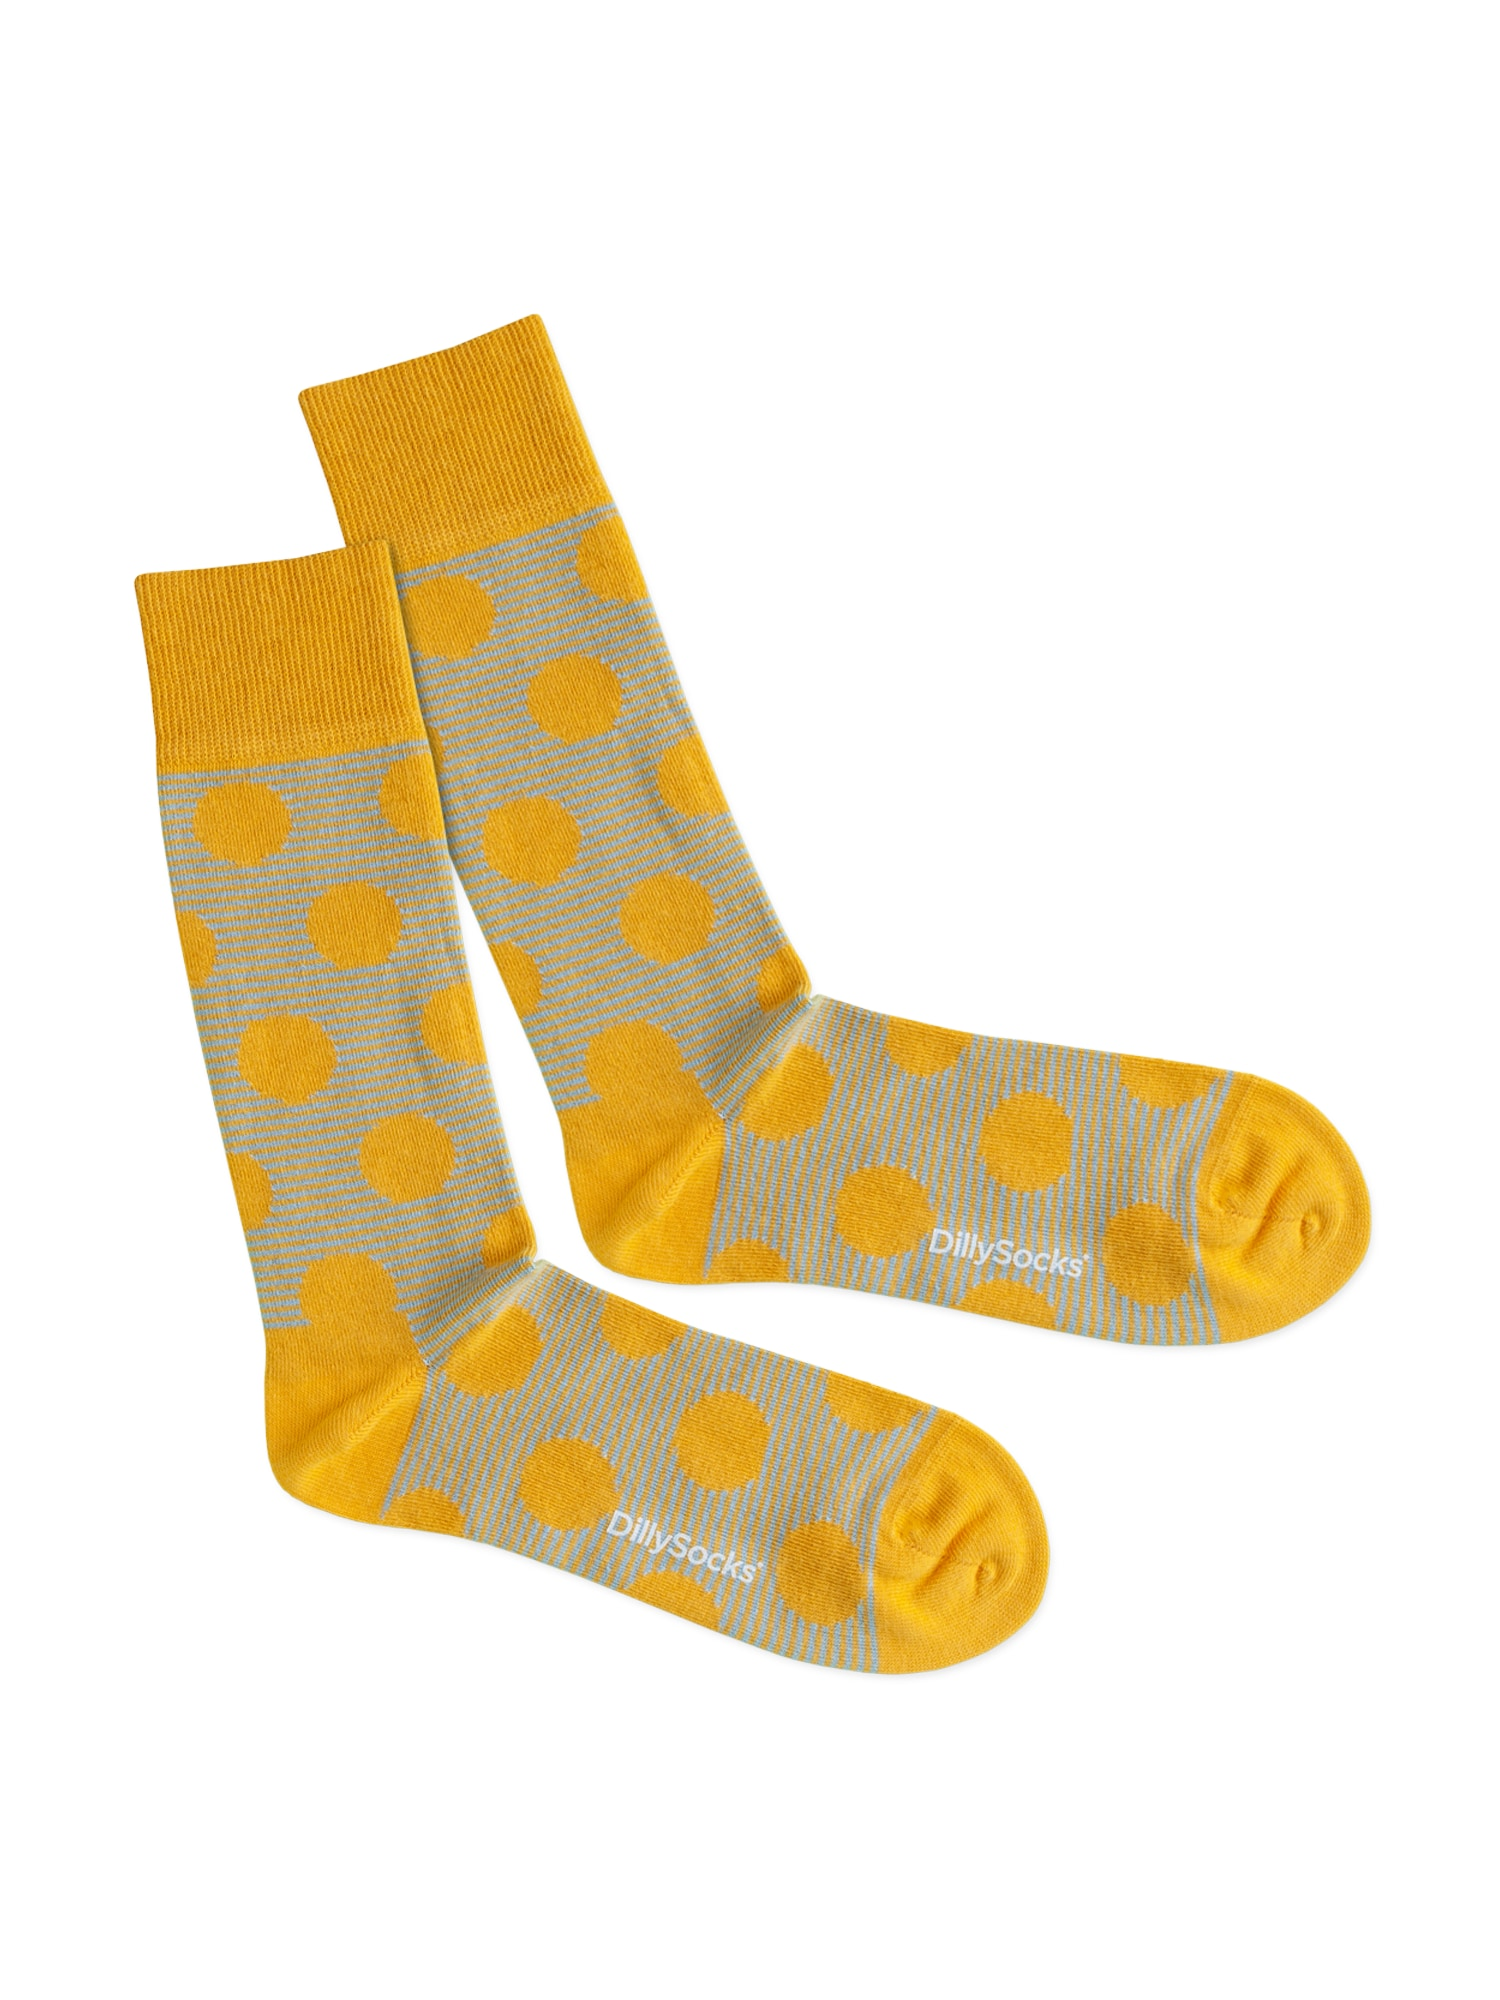 DillySocks Ťapky 'Sun Radiation'  žlté